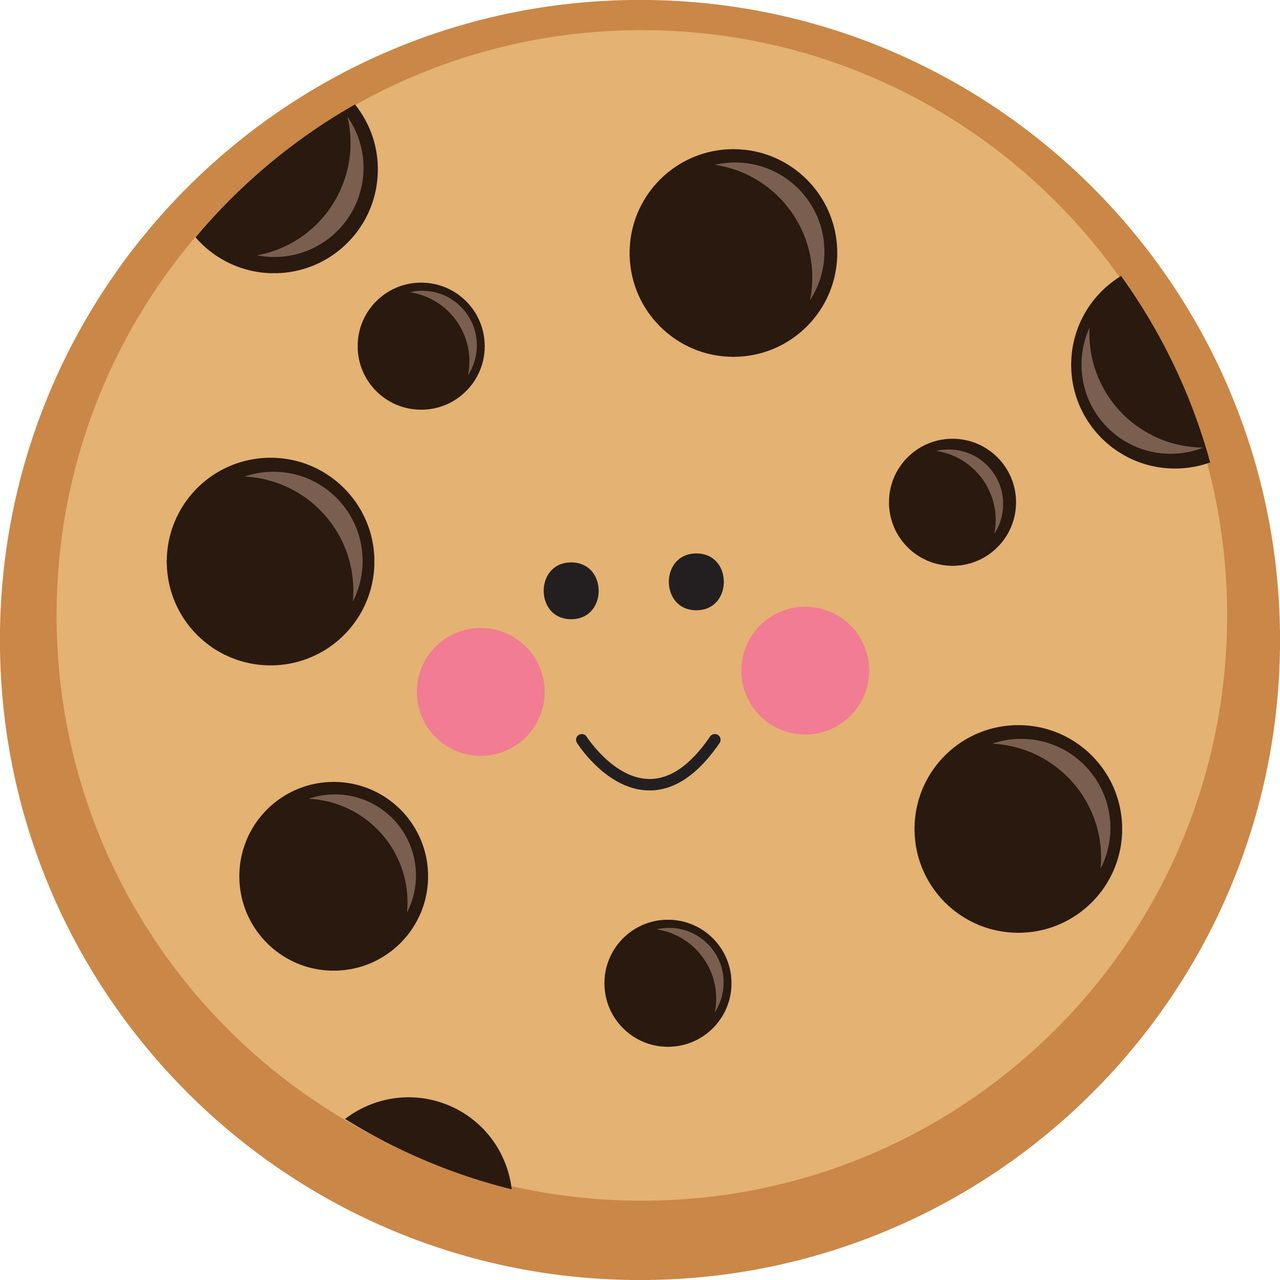 Chip clipart svg. Cute chocolate cookie off